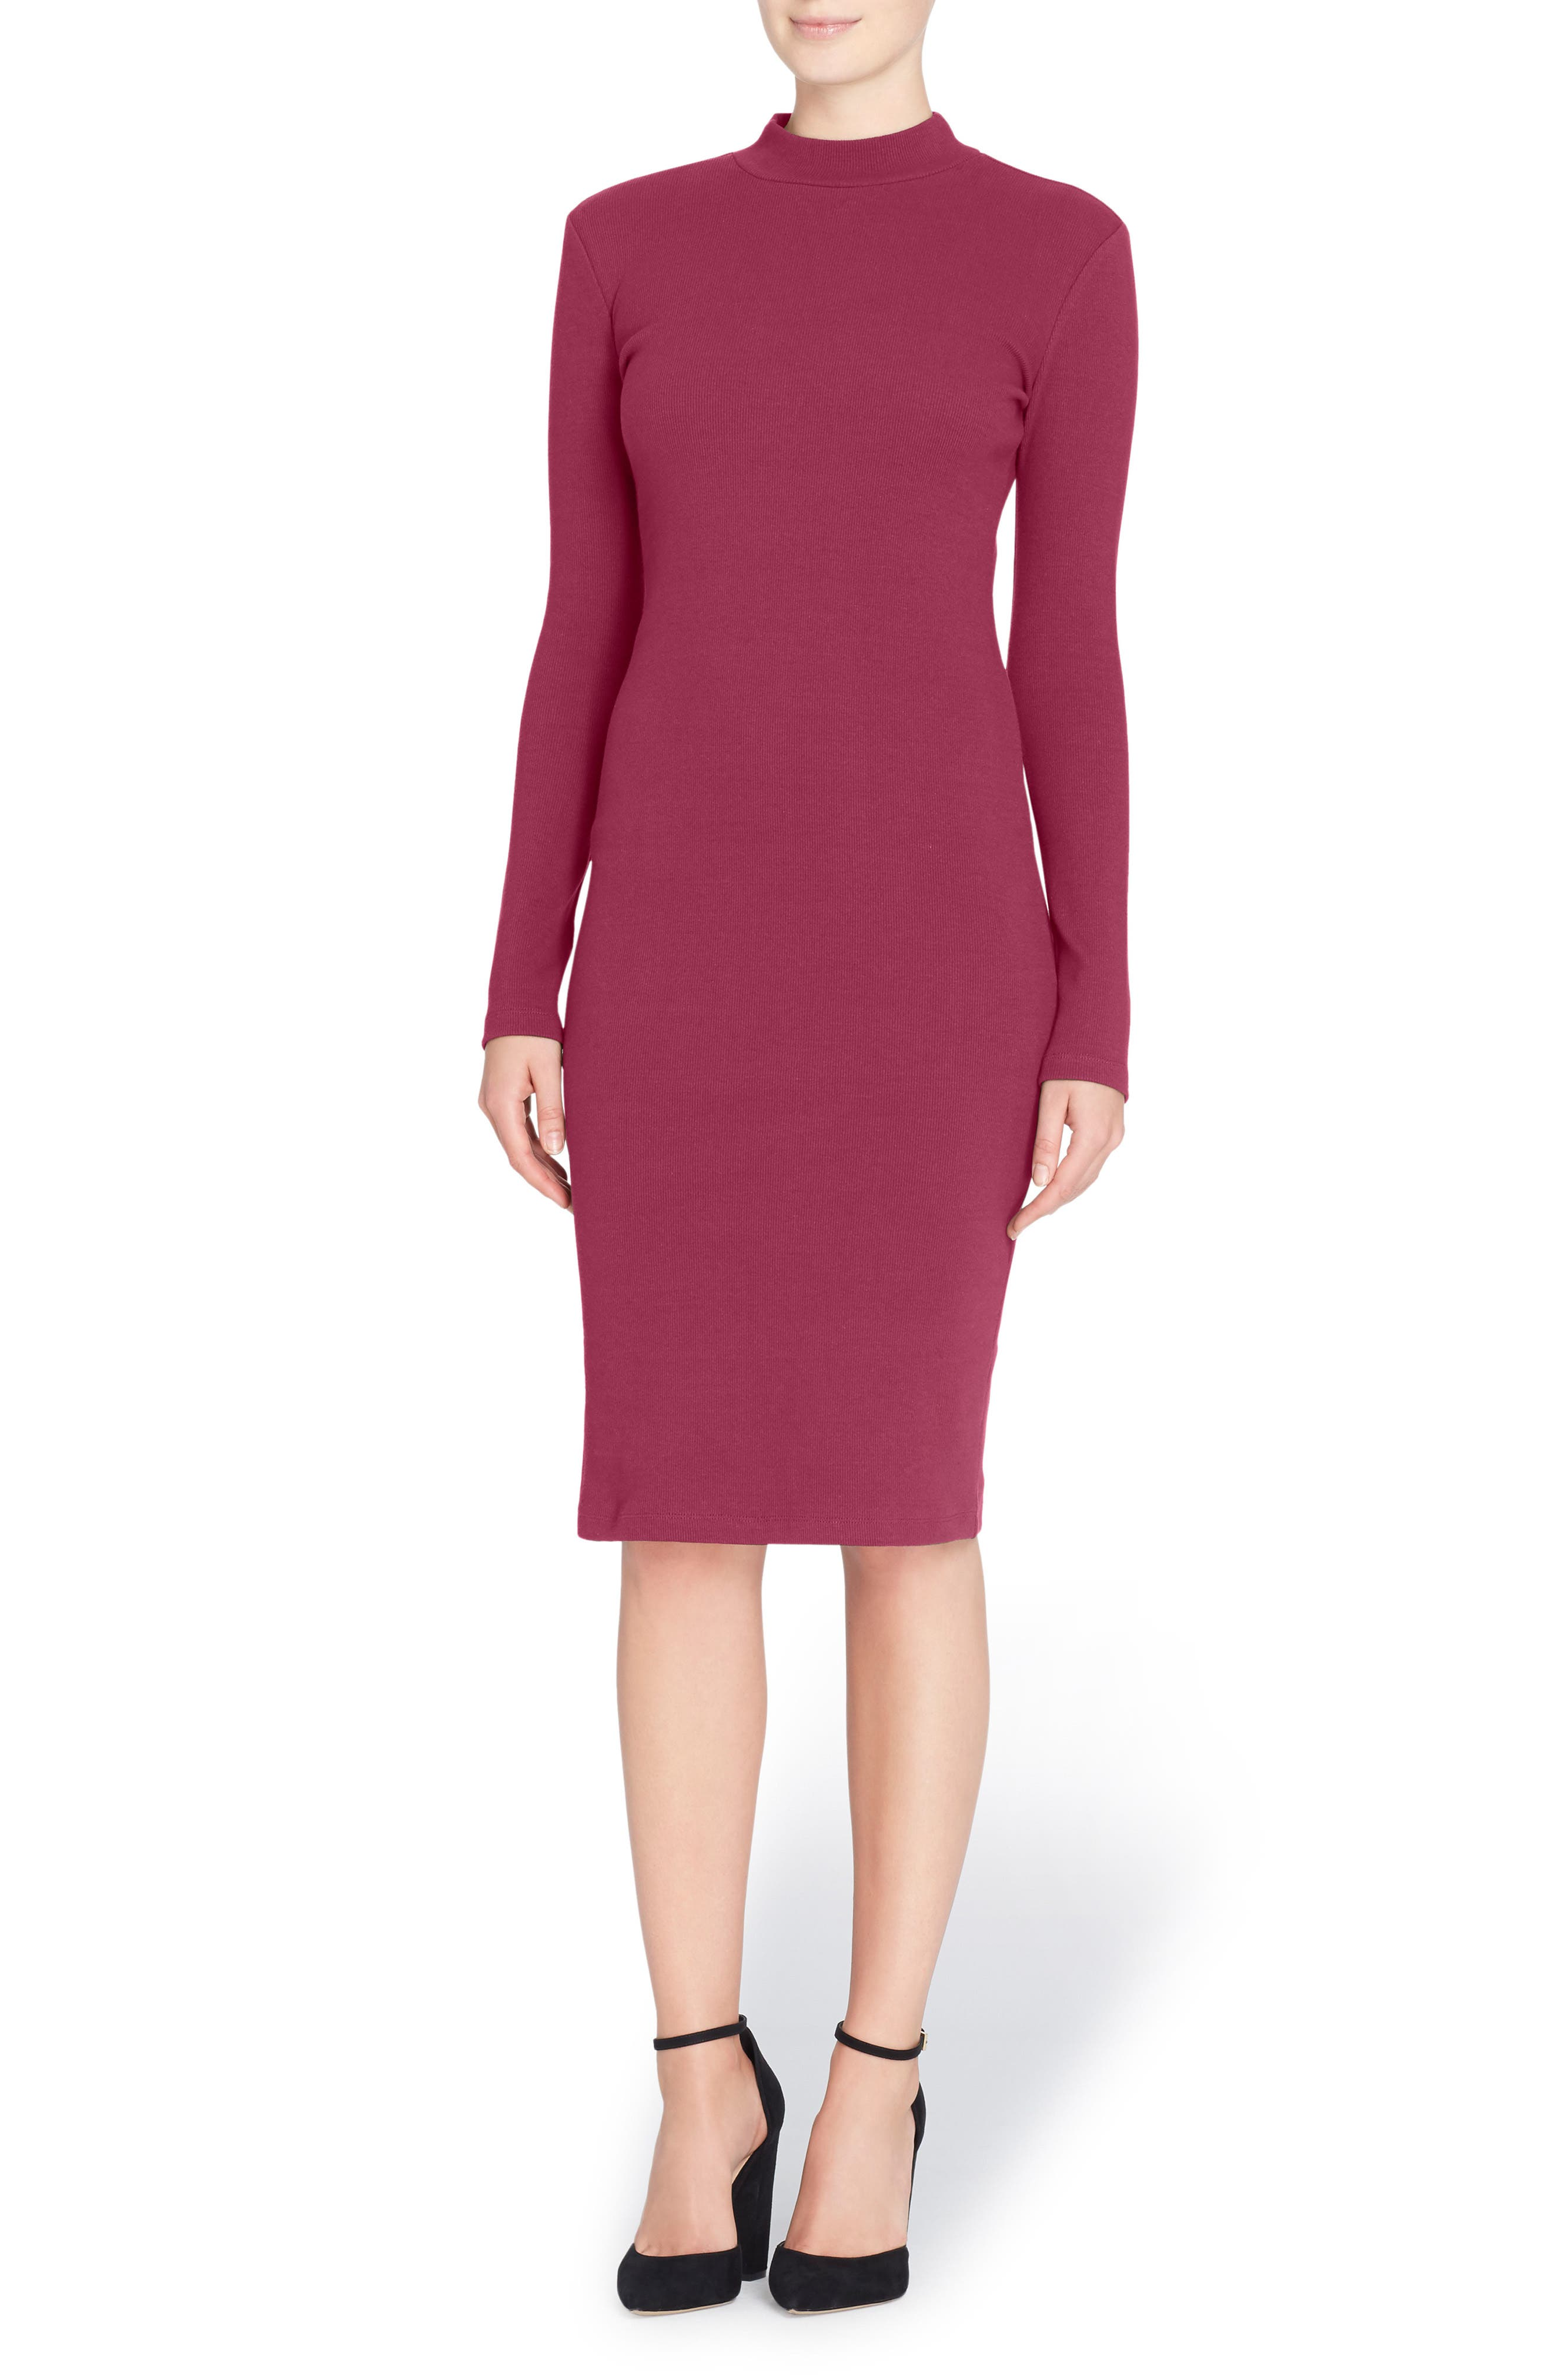 Main Image - Catherine Catherine Malandrino 'Kristiana' Knit Midi Dress